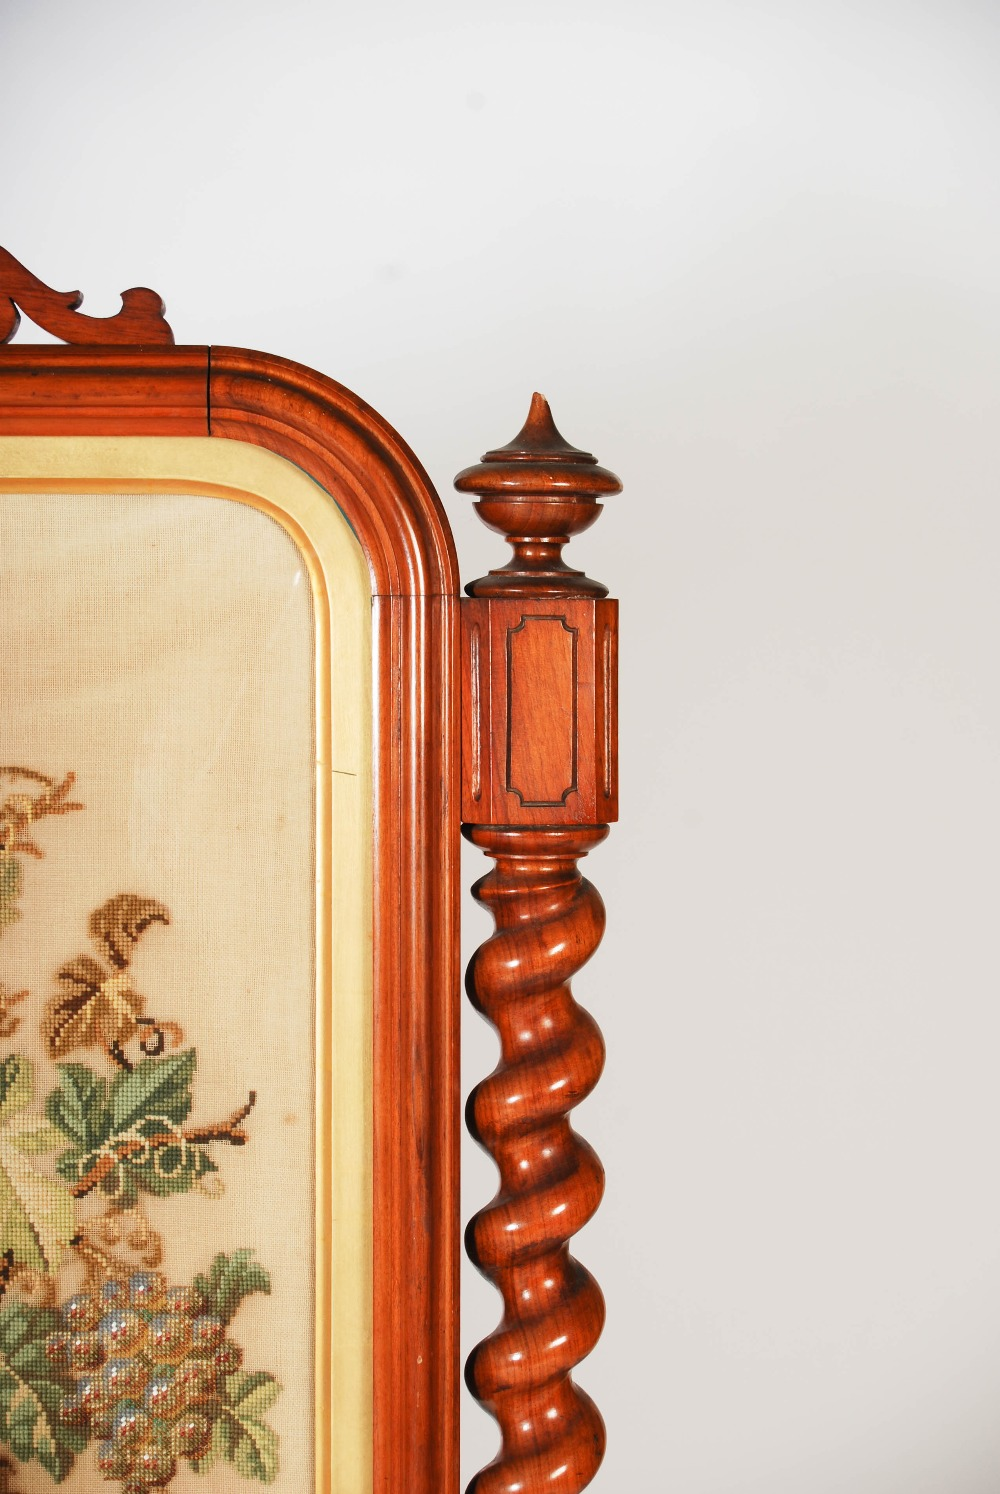 Lot 96 - A large Victorian mahogany needlework embroidered fire screen, the rectangular needlework panel